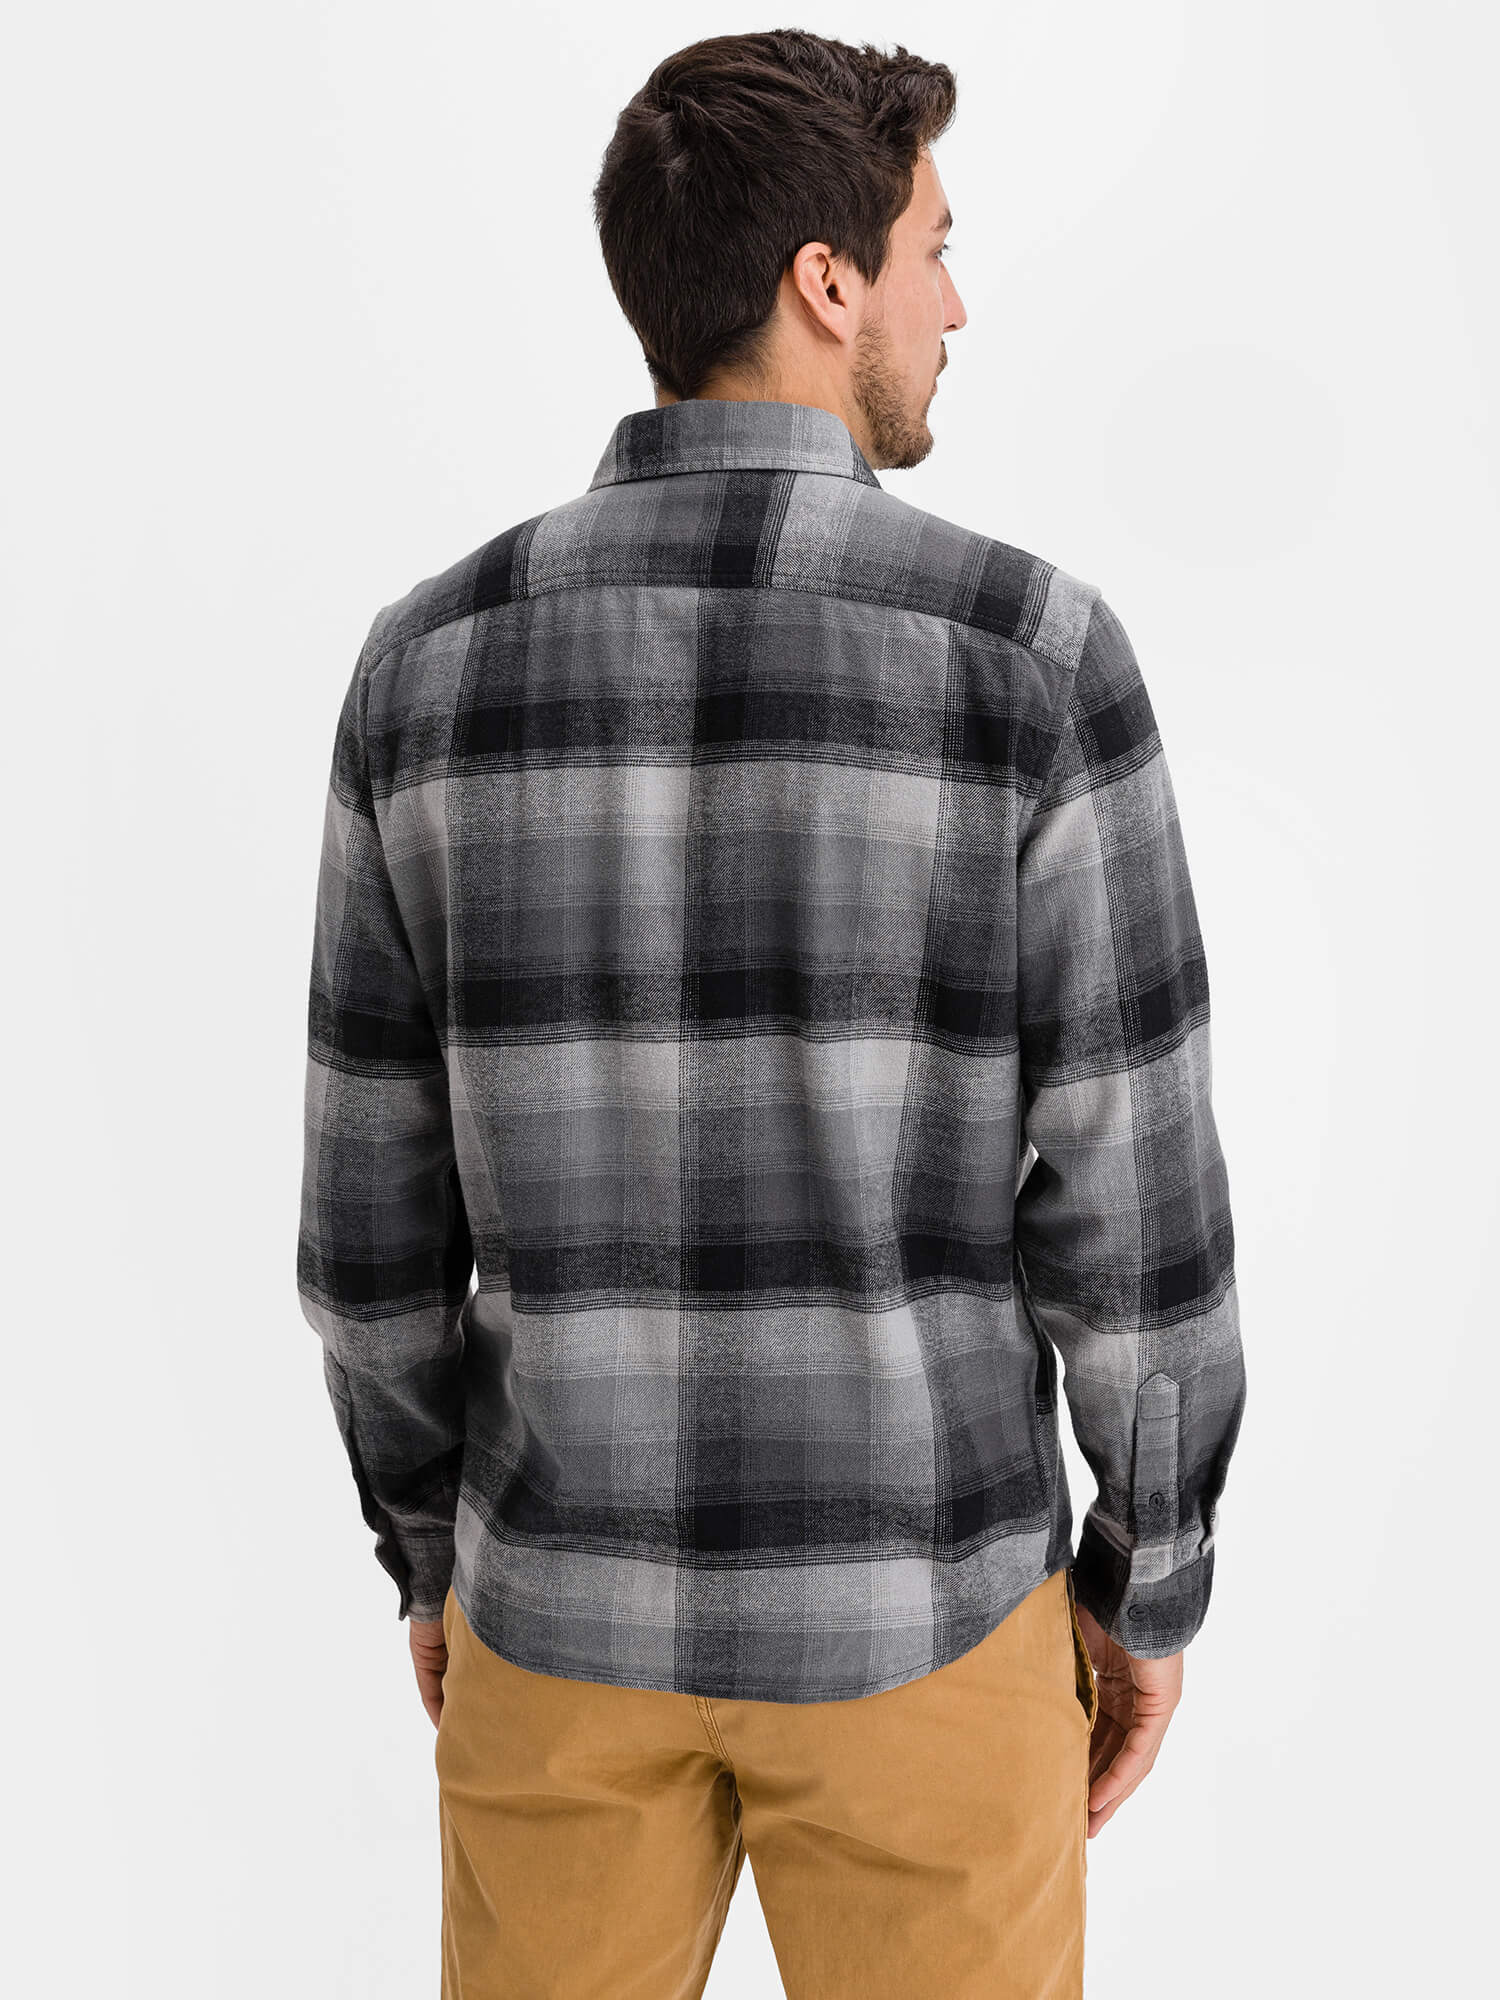 Košeľa flannel shirt in untucked fit (2)